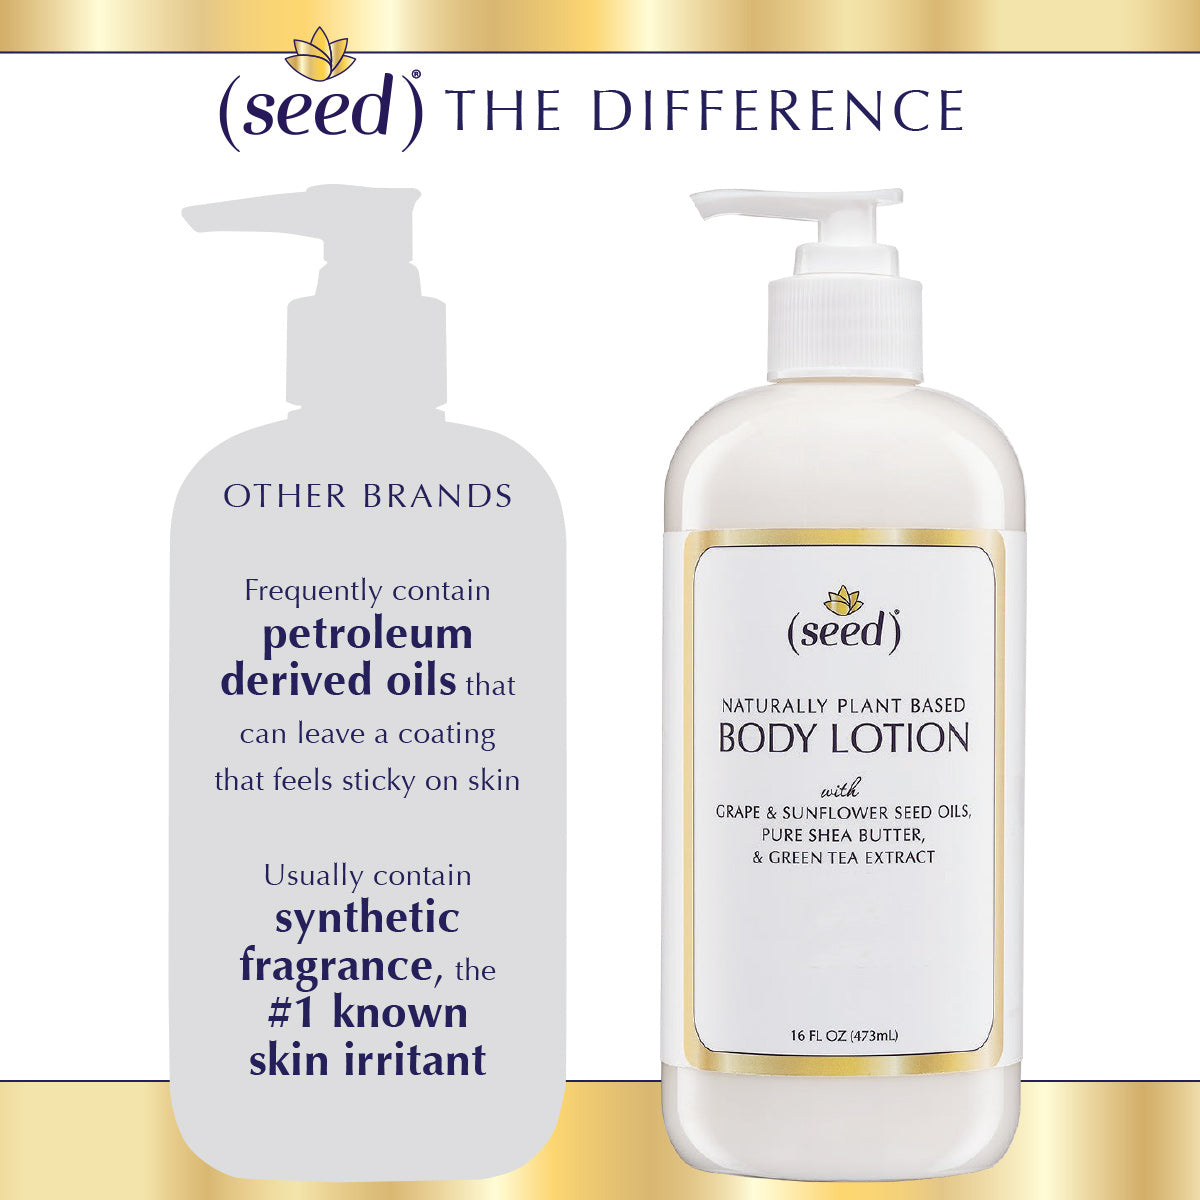 Seed Body Lotion comparison to other brands